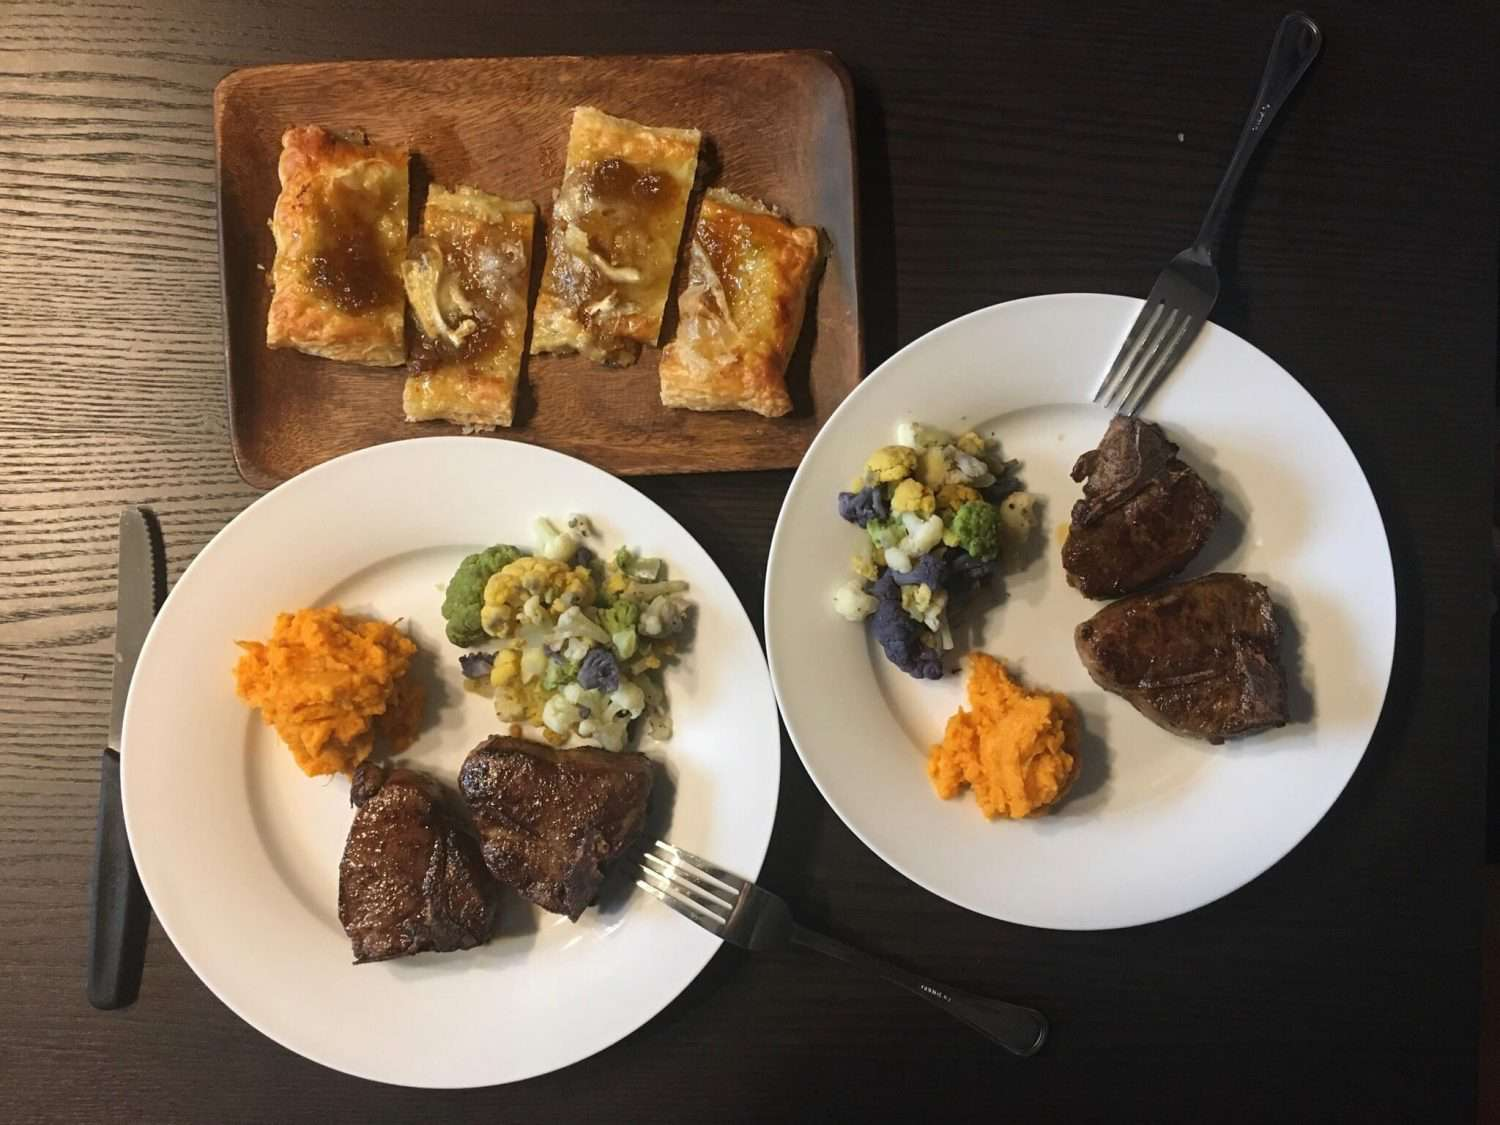 overhead view of an easter dinner, with lamb loin chops, roasted cauliflower, and mashed sweet potatoes